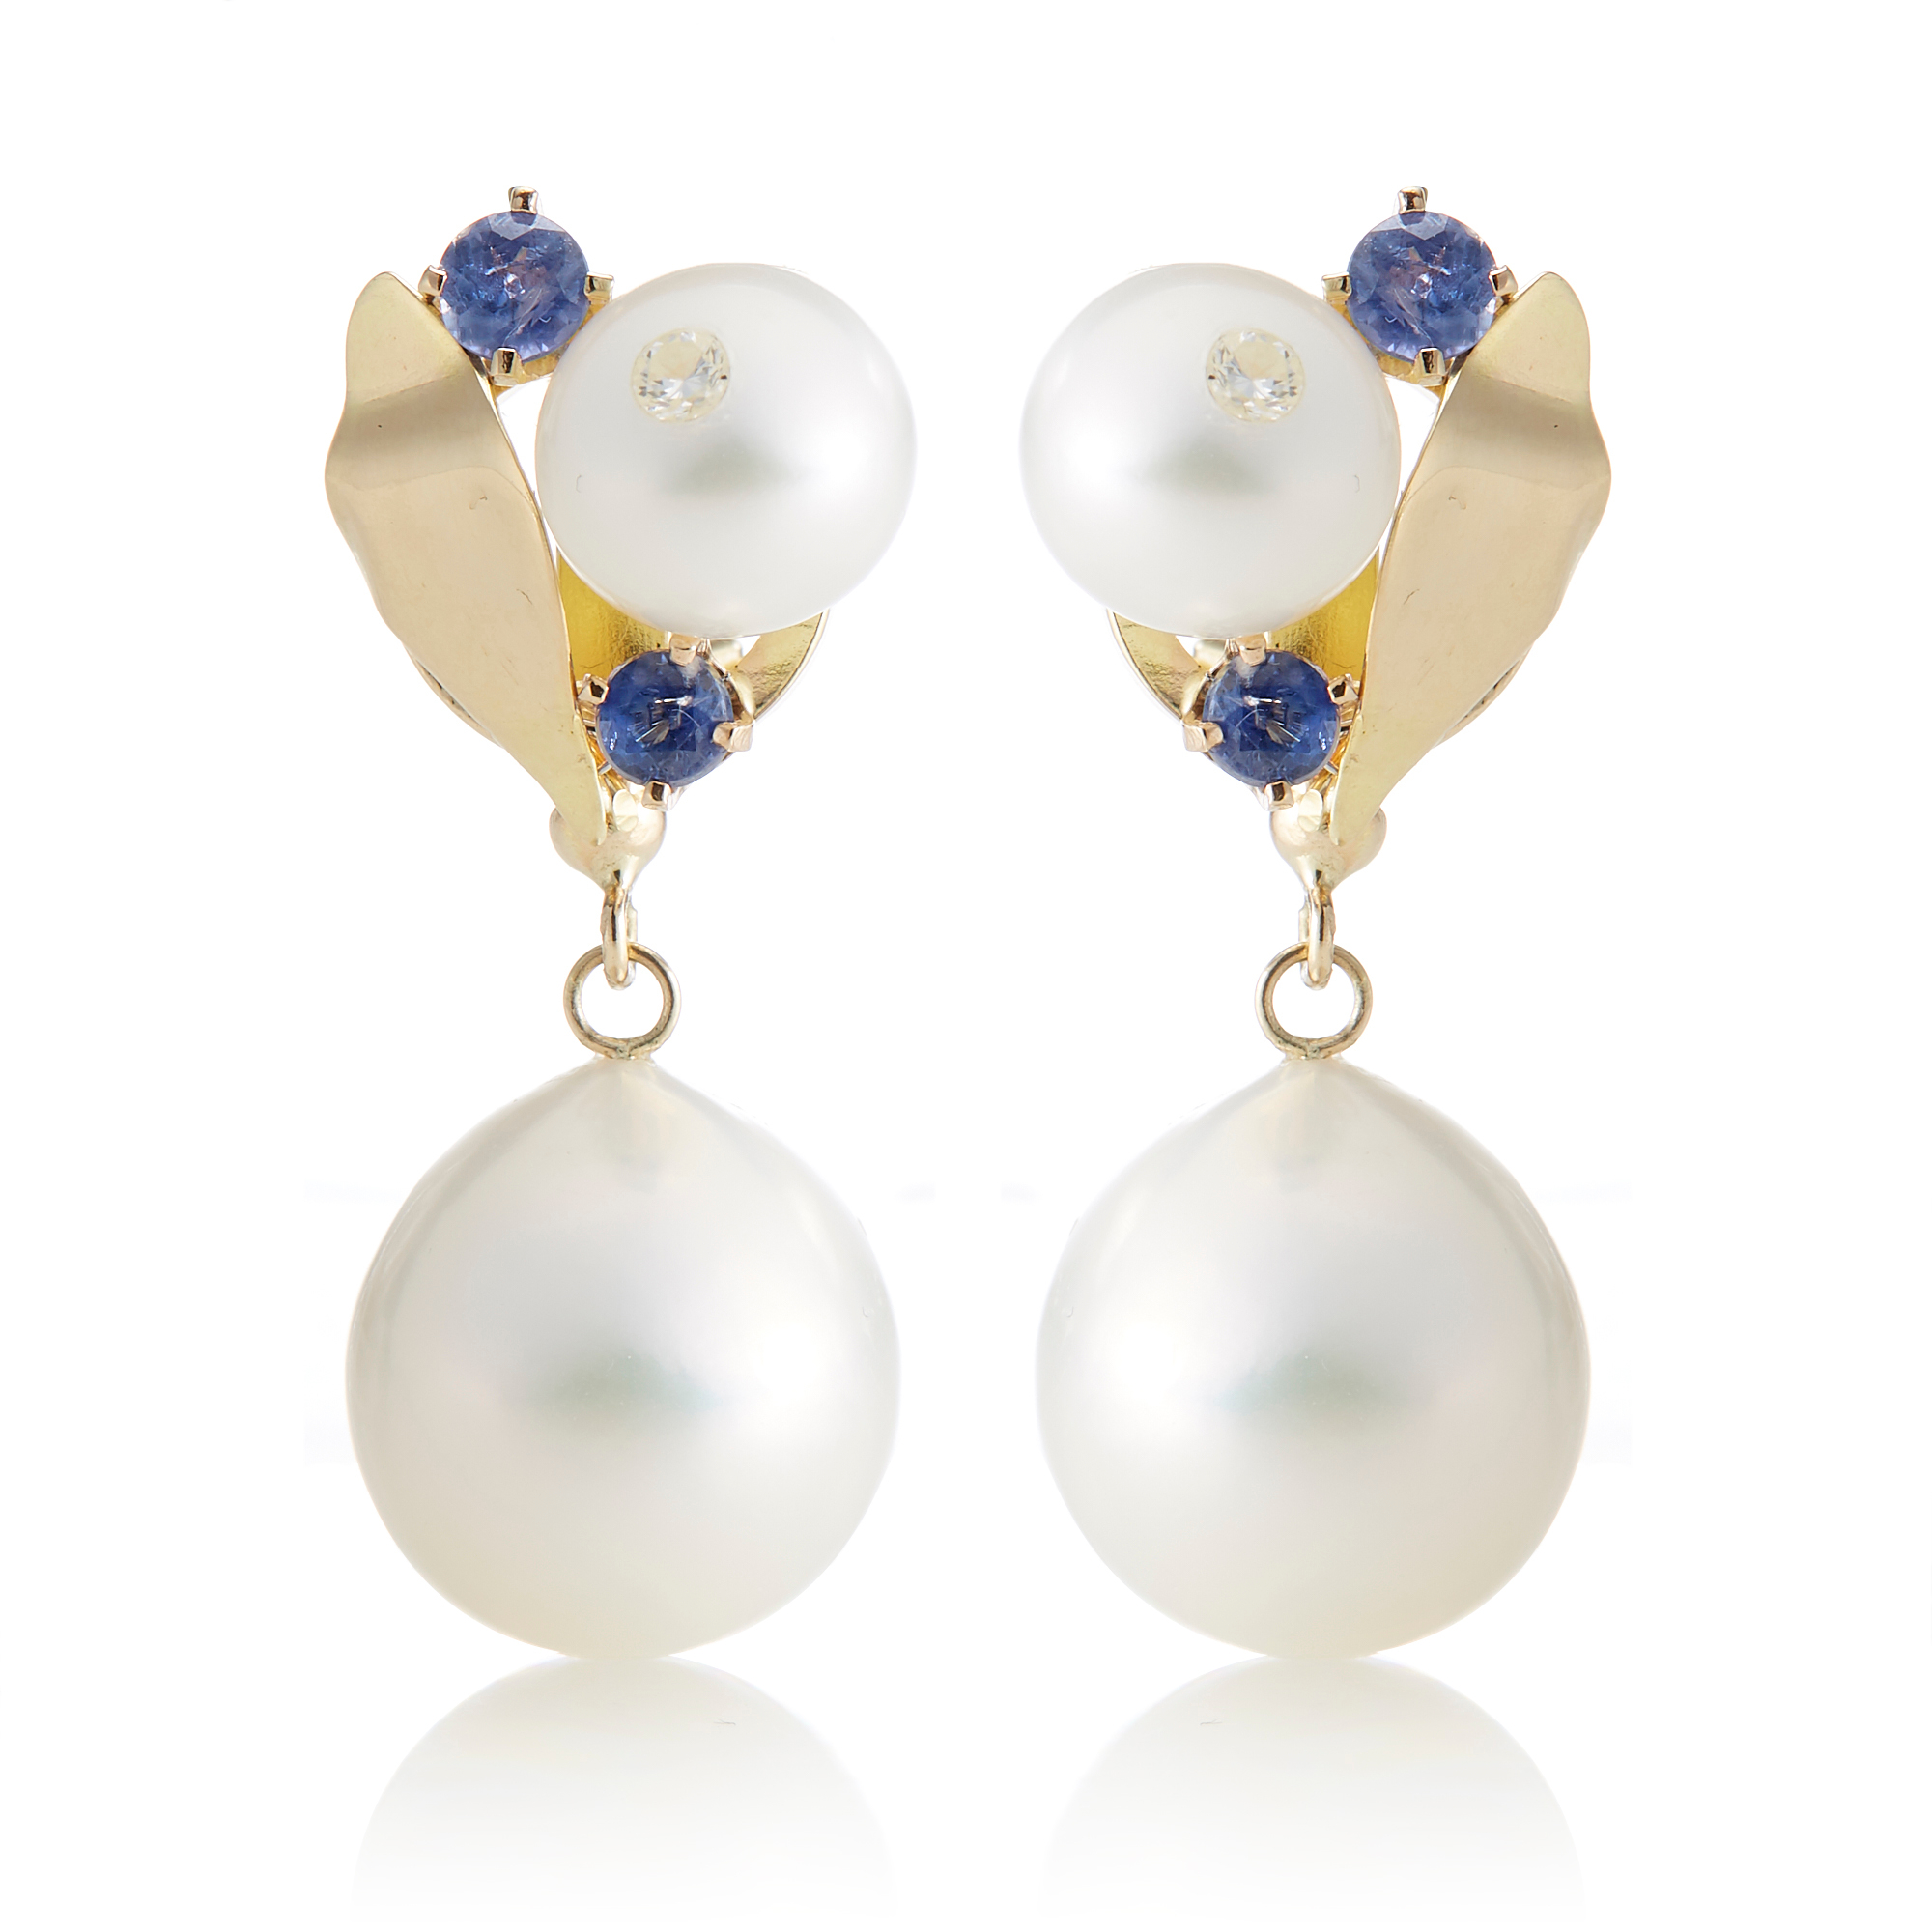 Russell Trusso Pearl & Sapphire Floral Drop Earrings